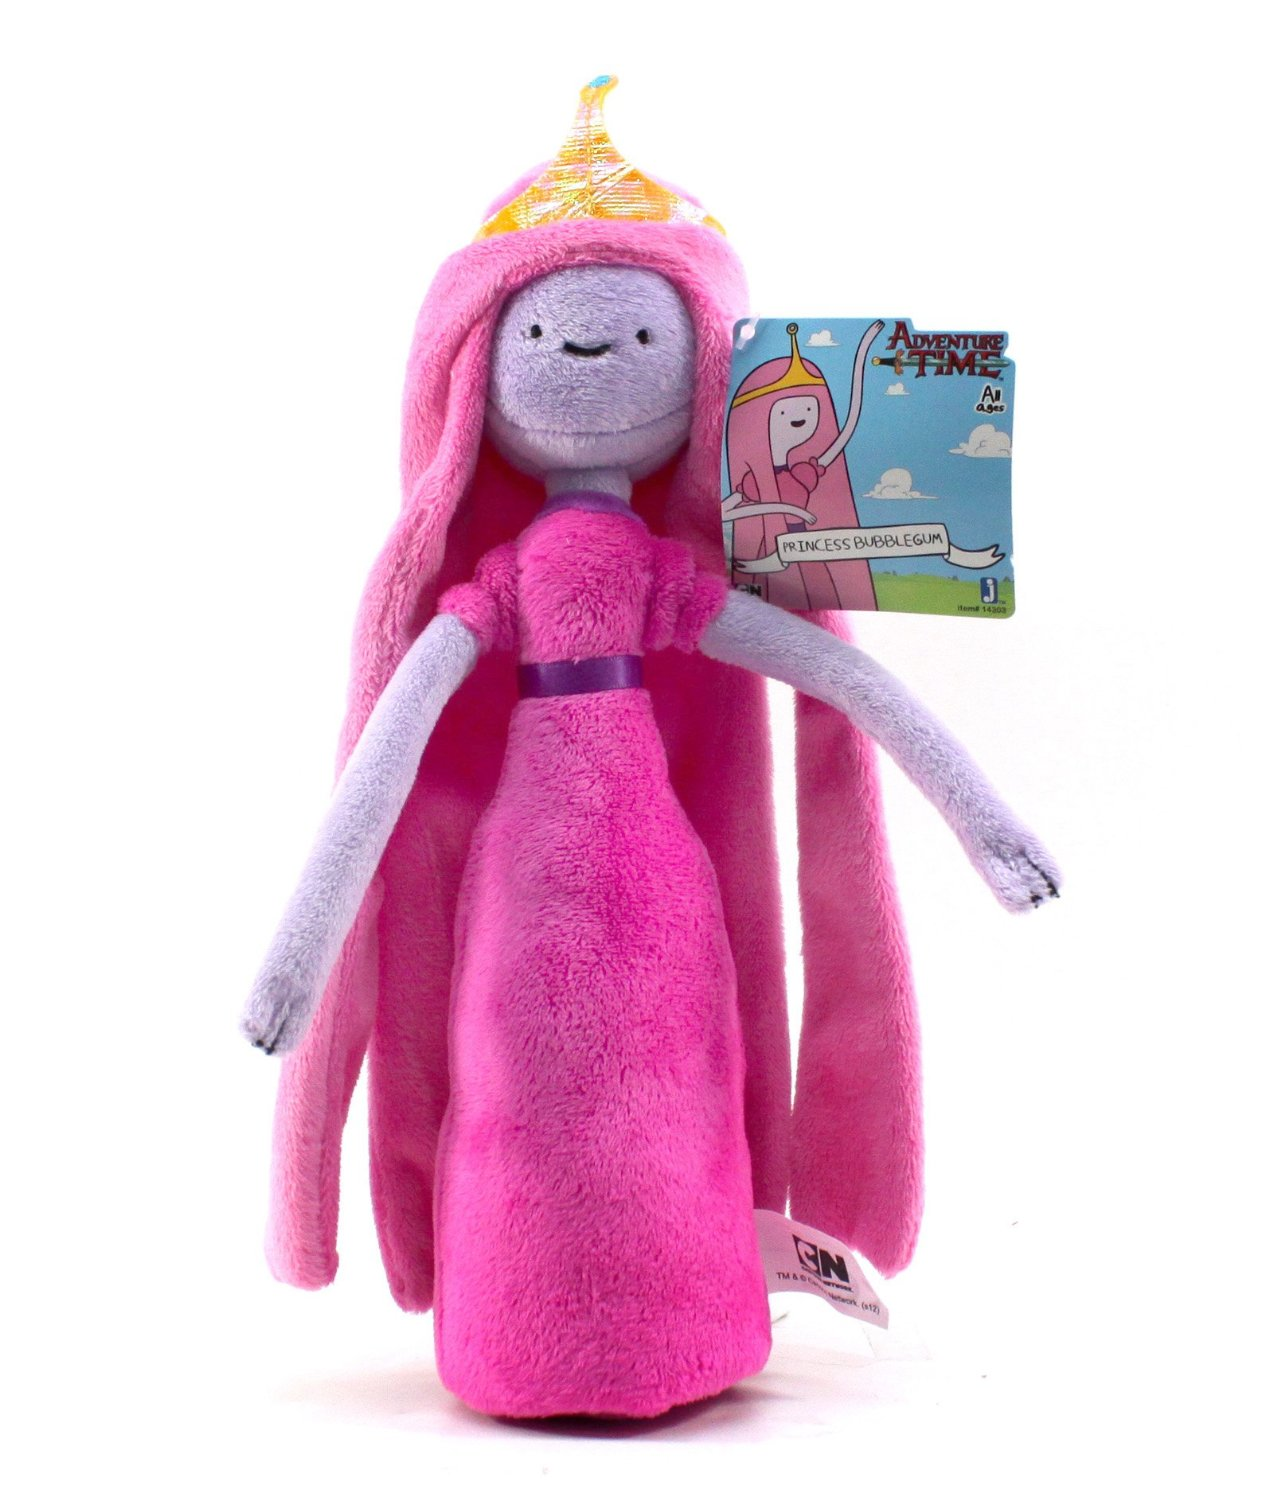 Adventure Time Princess Bubblegum plush doll